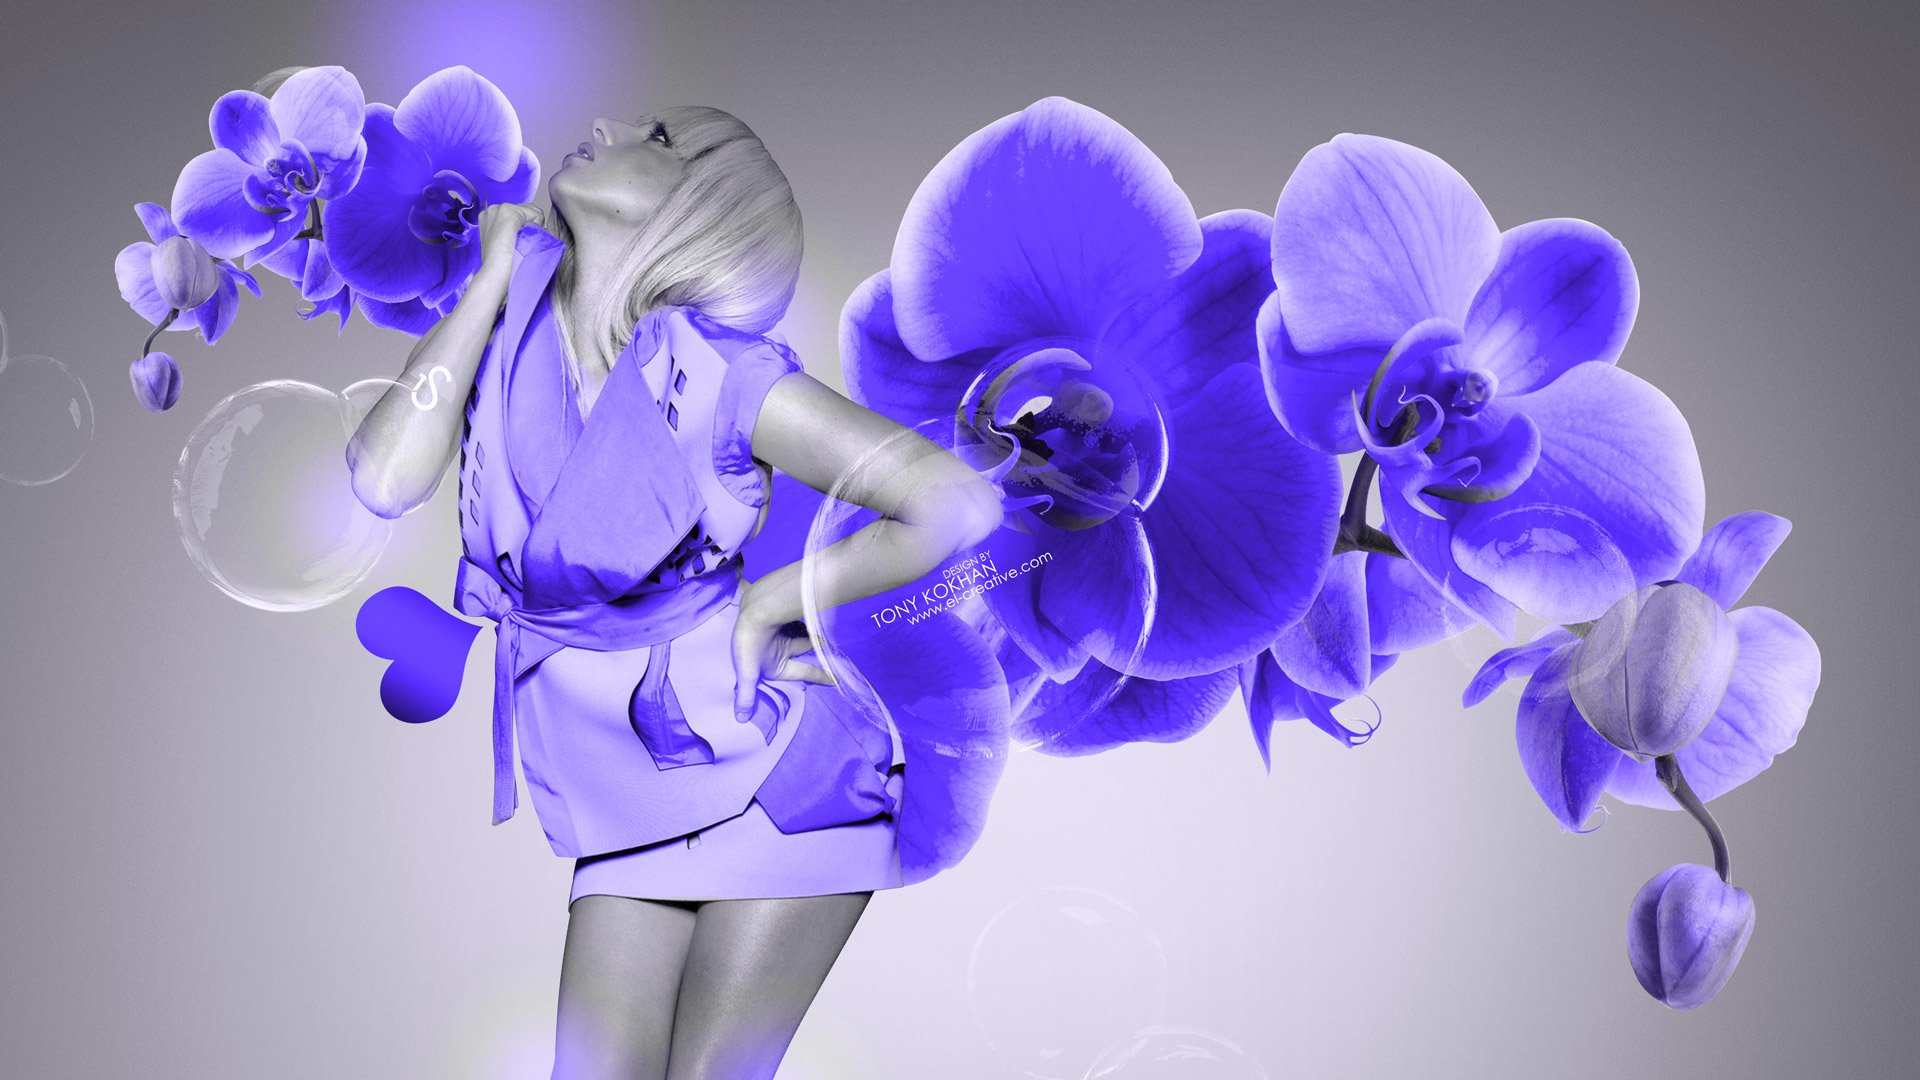 flowers butterfly car 2014 violet neon hd wallpapers design by tony 1920x1080